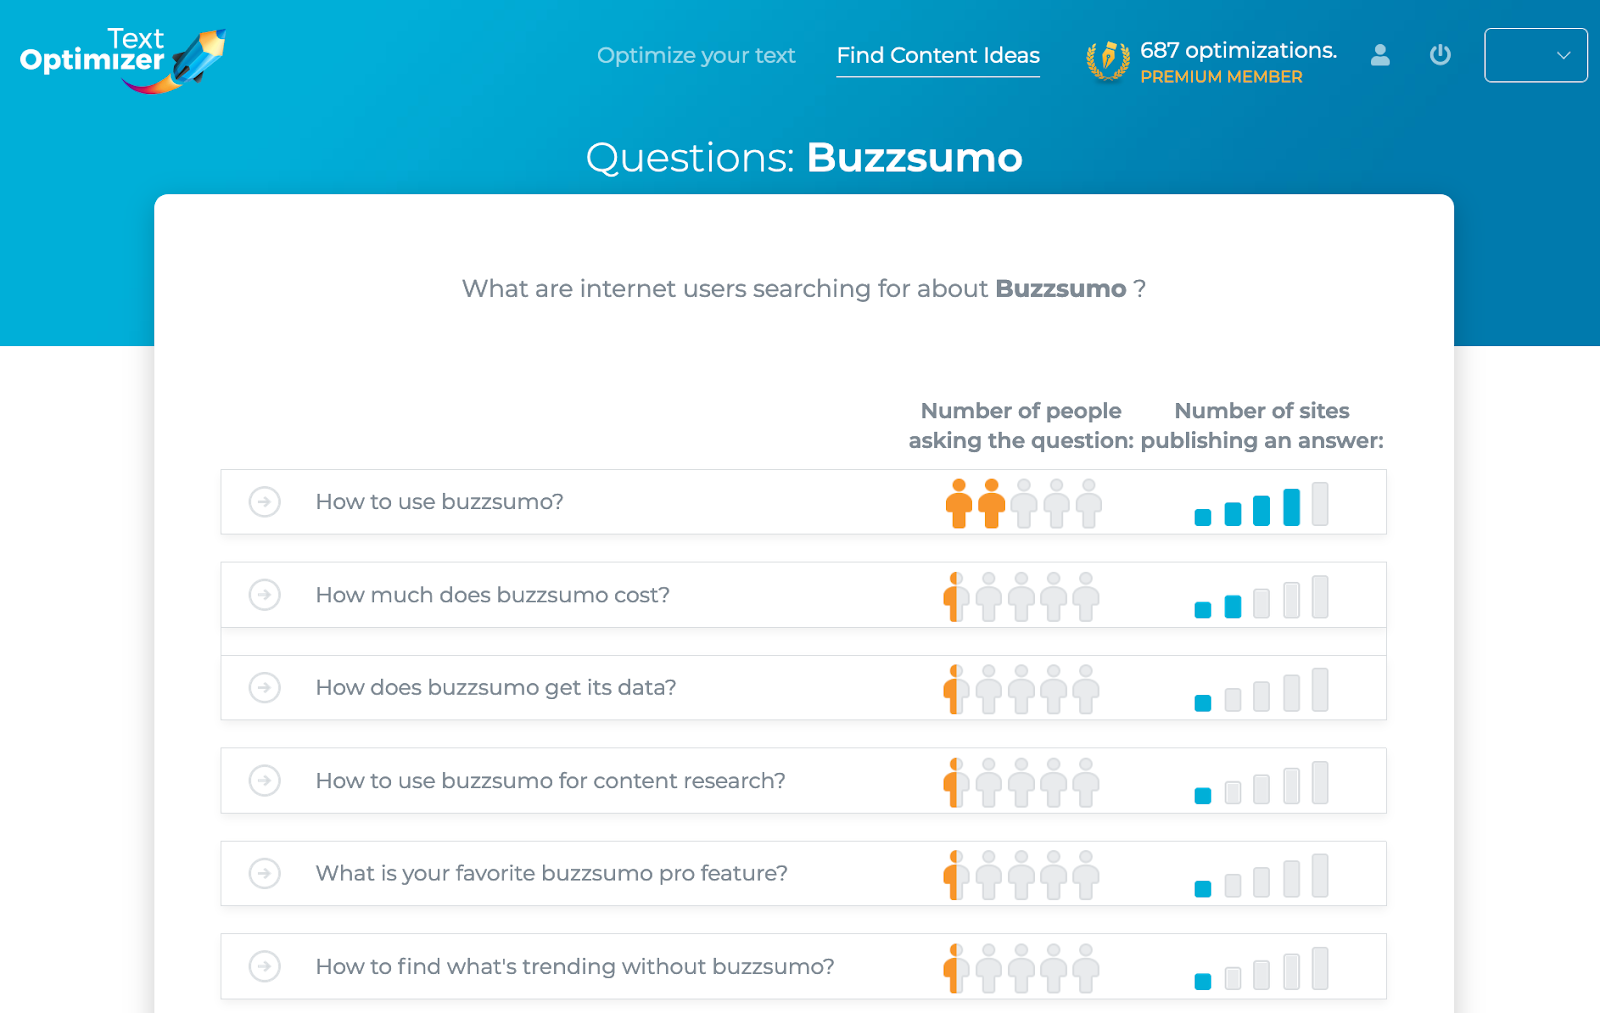 Screenshot of a Text Optimizer search for Buzzsumo.